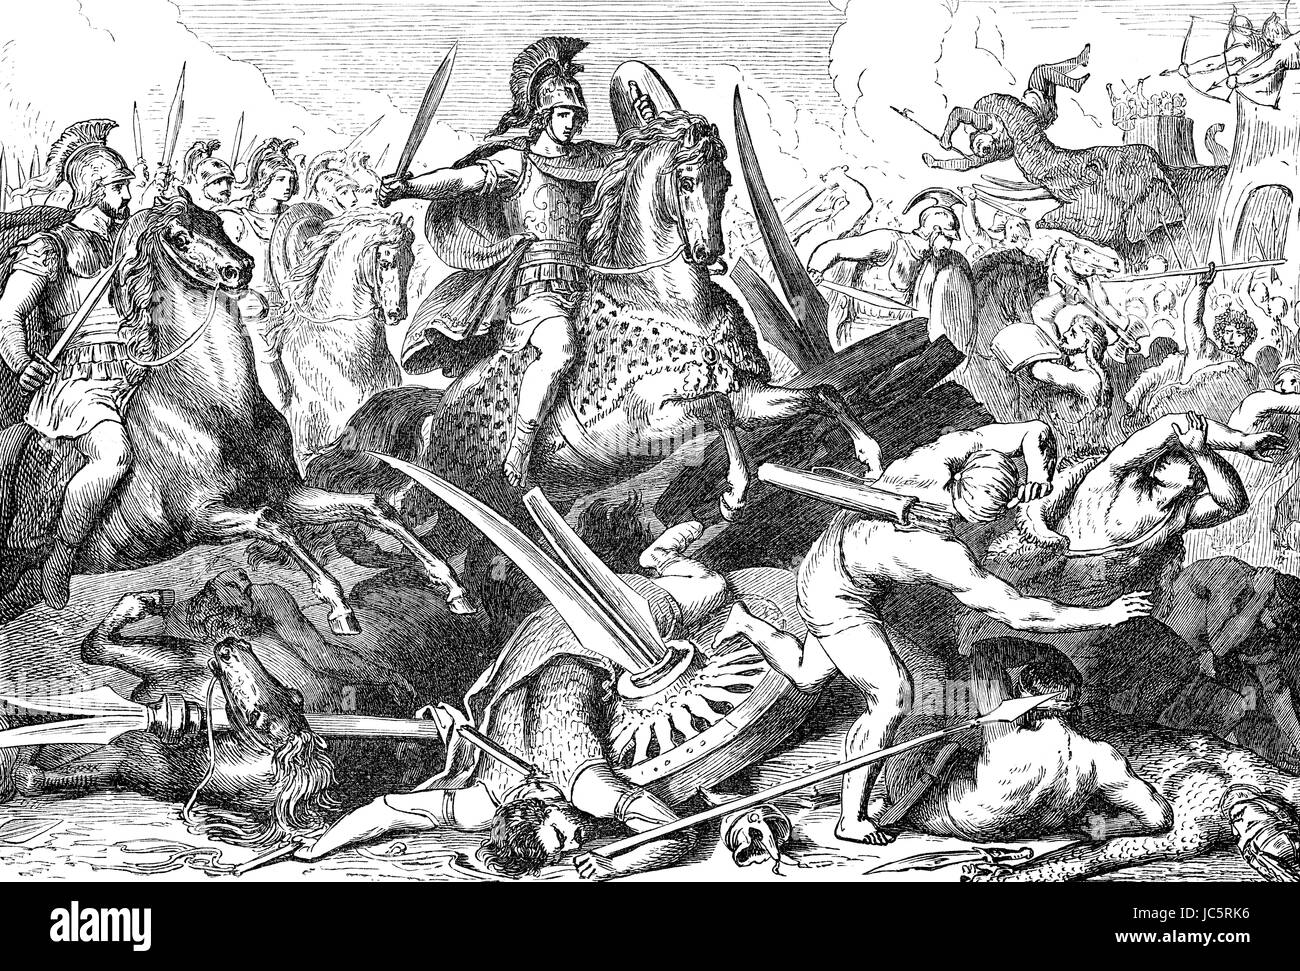 Alexander the Great at Battle of Gaugamela in 331 BC - Stock Image